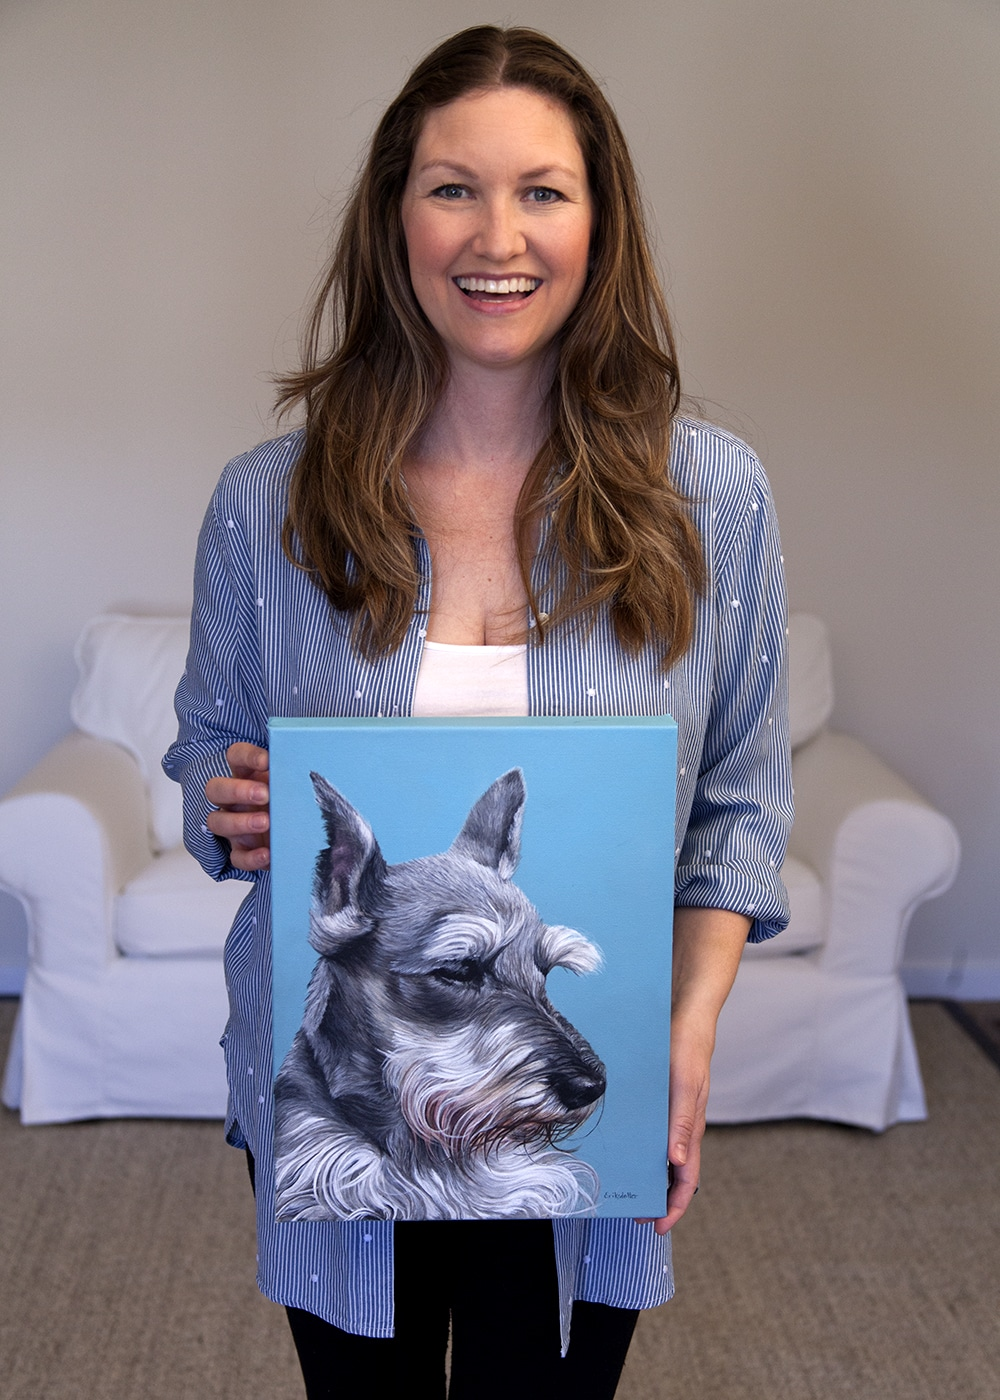 Photo of fine arts painter Erica Eriksdotter holding her custom dog portrait of a schnauzer